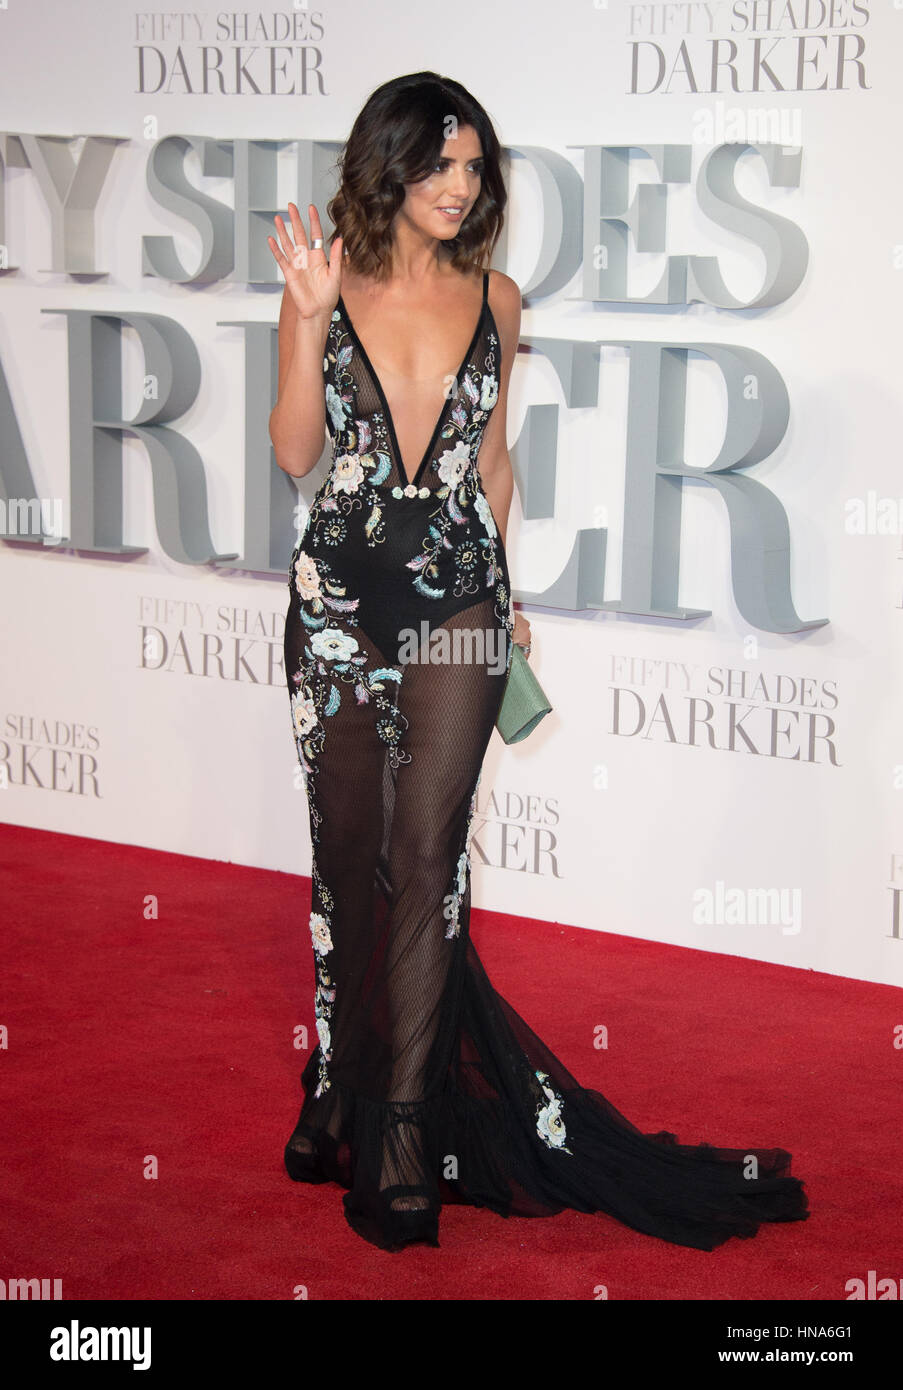 Lucy Mecklenburgh attends the premiere of Fifty Shades Darker Odeon Leicester Square, London. - Stock Image